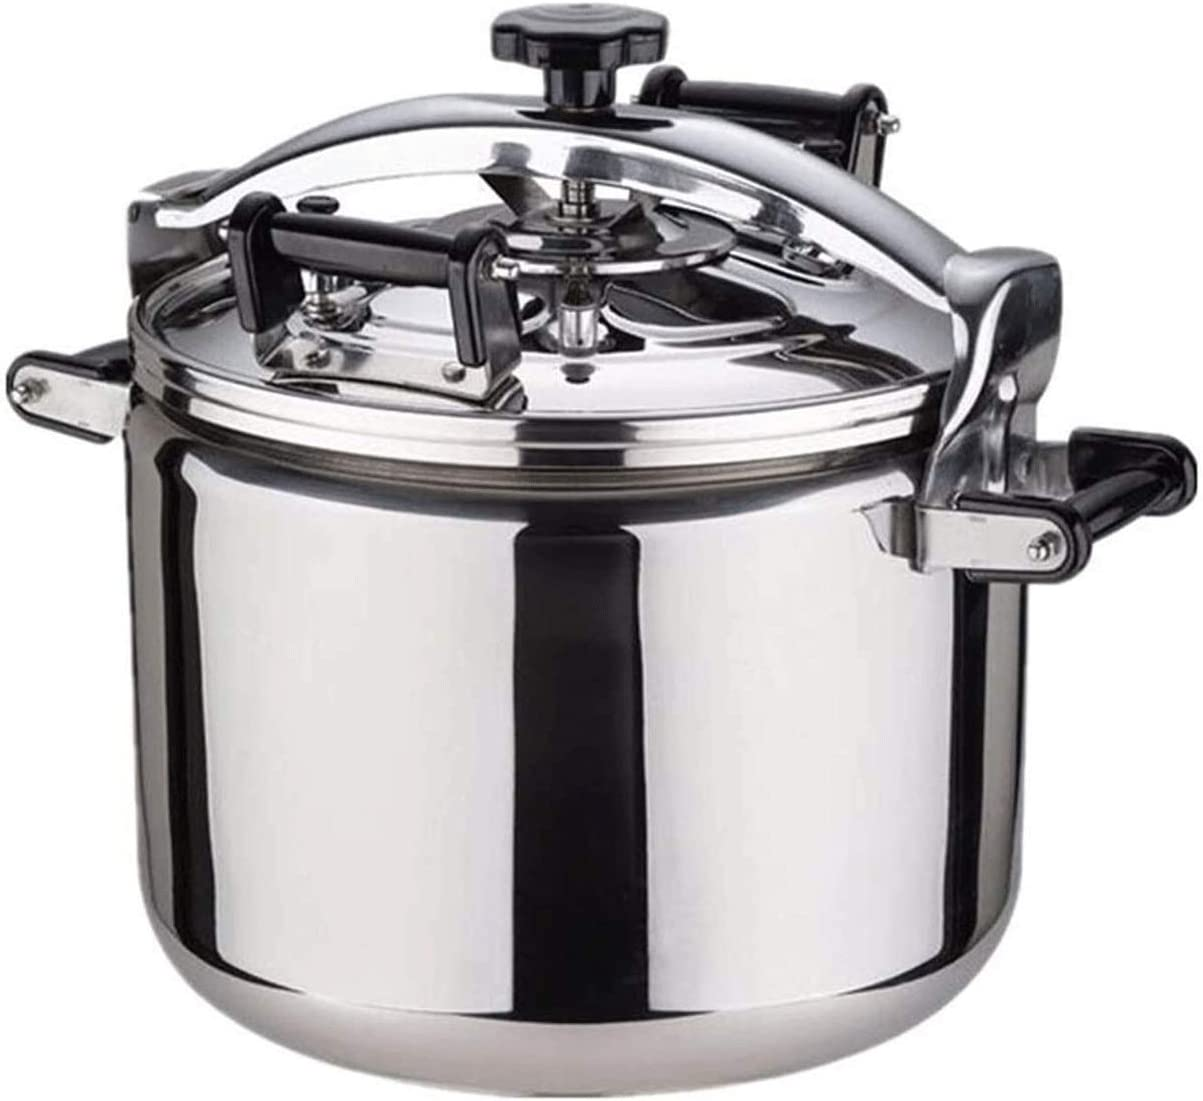 Z-COLOR 304 Stainless Steel Thickened Explosion-proof Pressure Cooker Cooker Commercial Hotel Gas-fired Induction Cooker General 22L, 30L, 40L (Size : 22L)